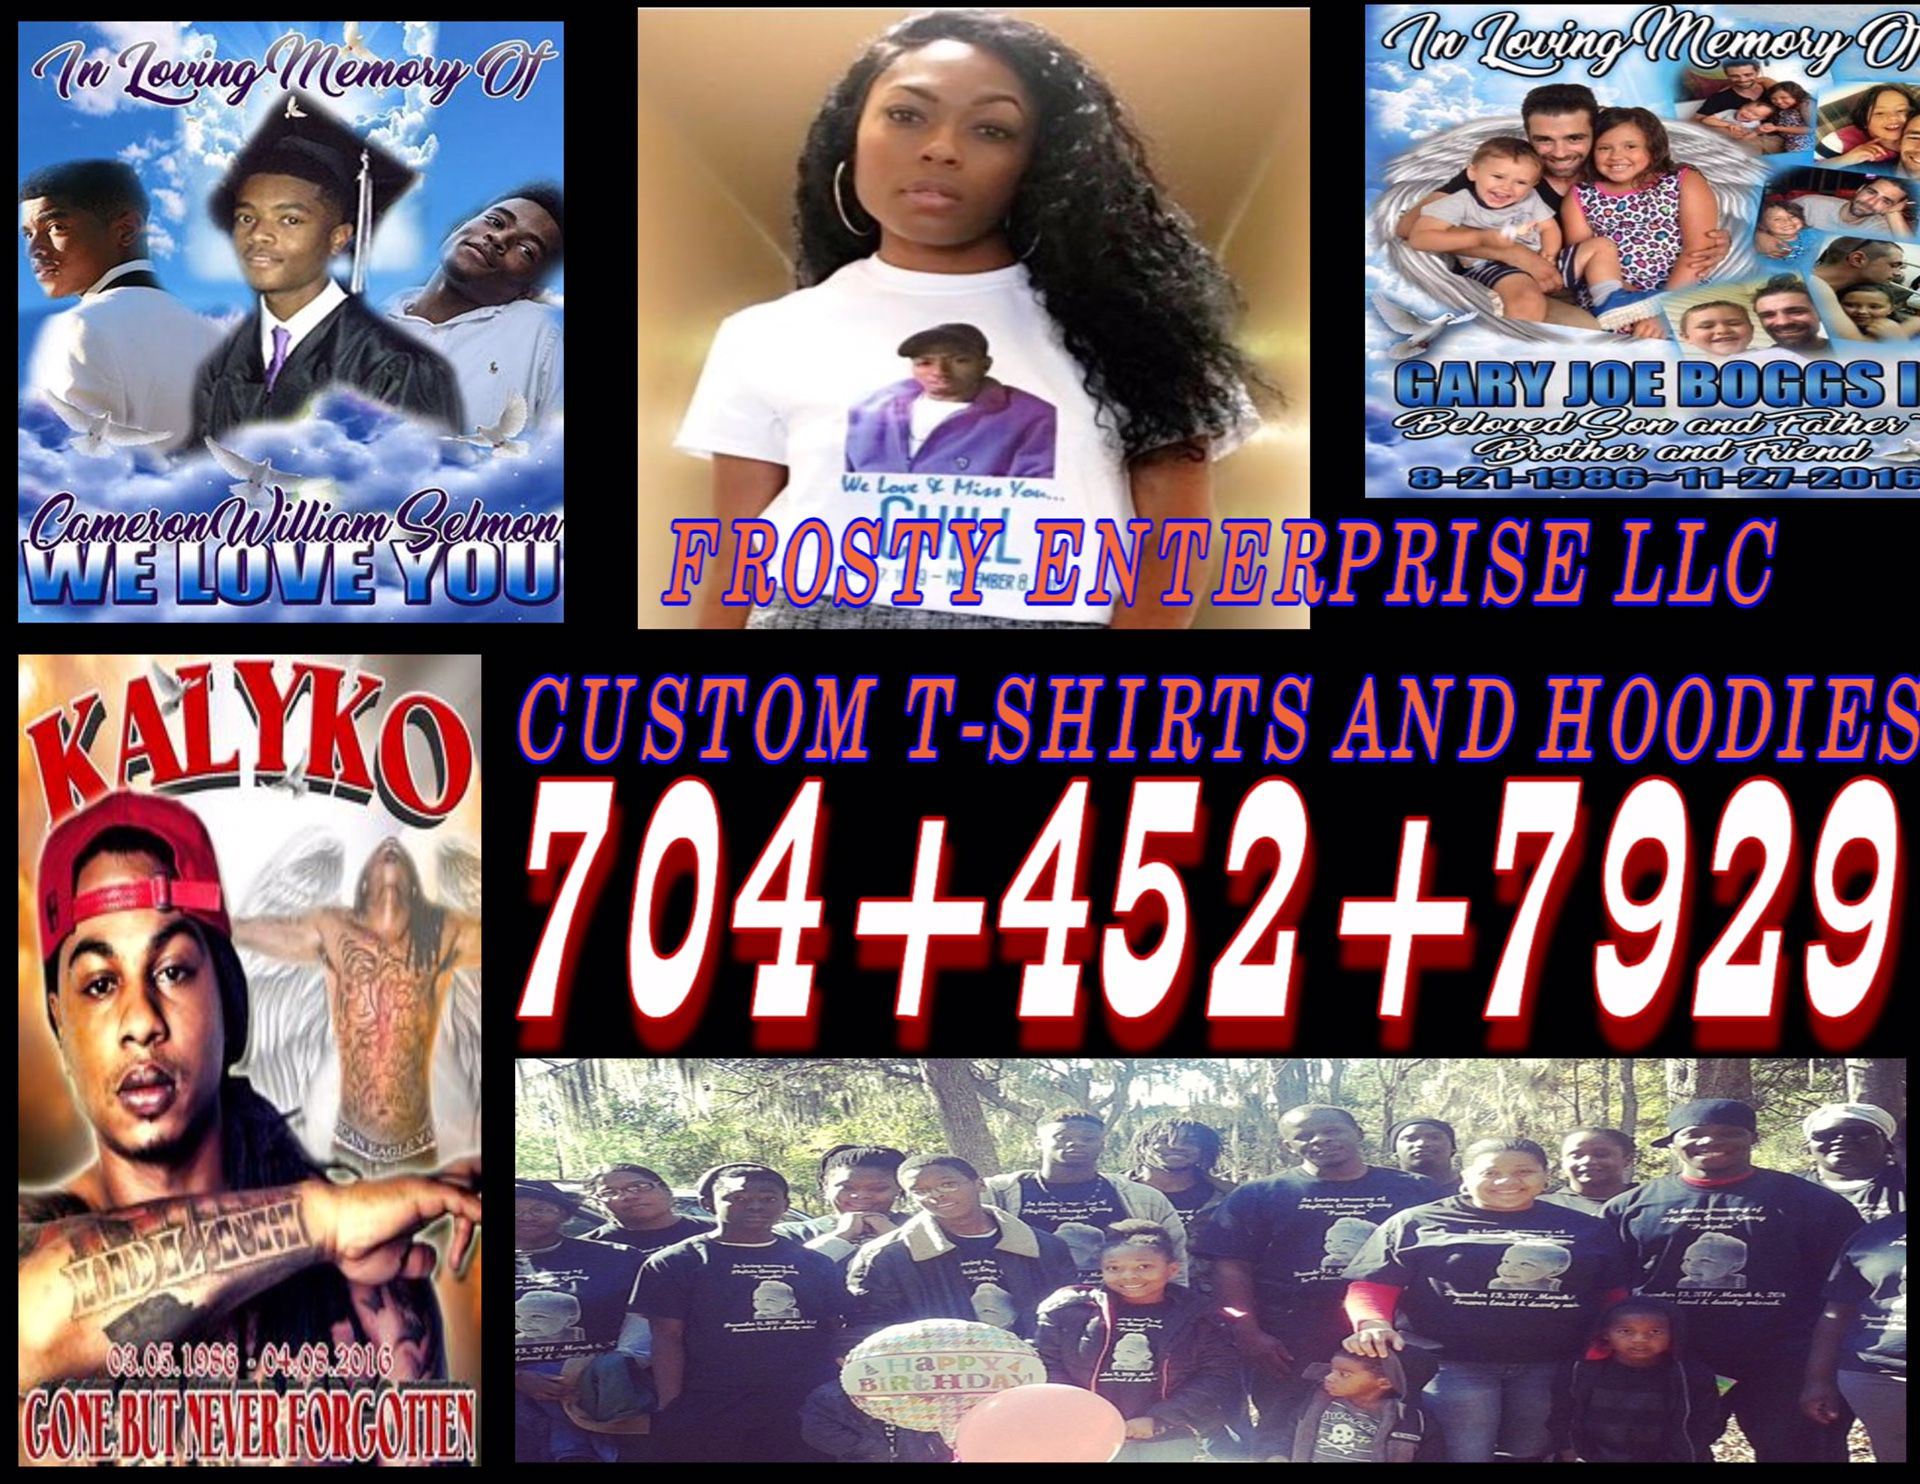 $10.00 Rip  Shirts Custom Made And Dmx Shirts For Greenville Sc Metro And Spartenburge Tap Picture For Full Contact View